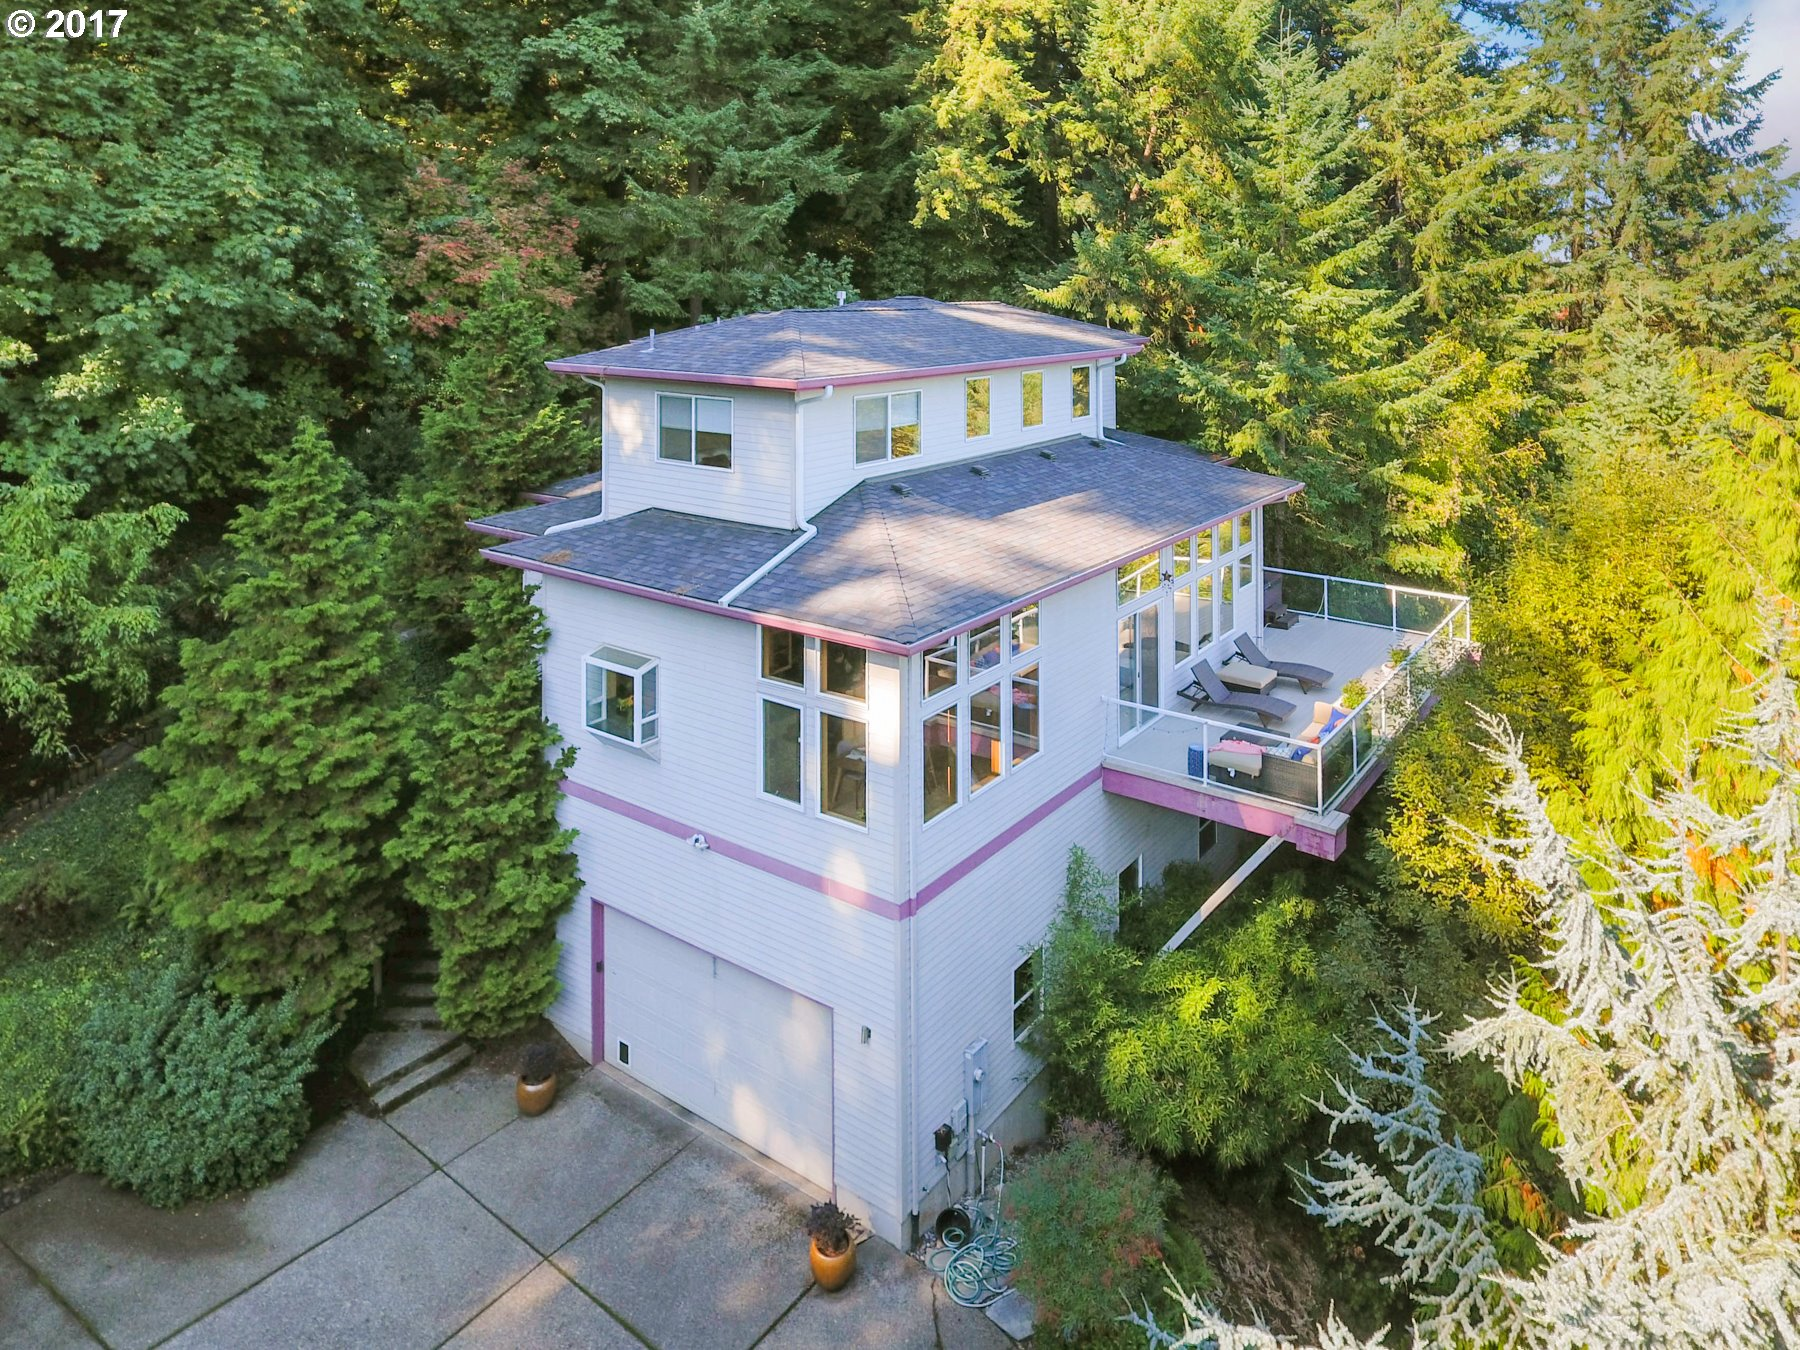 18400 HILLSIDE CT, West Linn, OR 97068